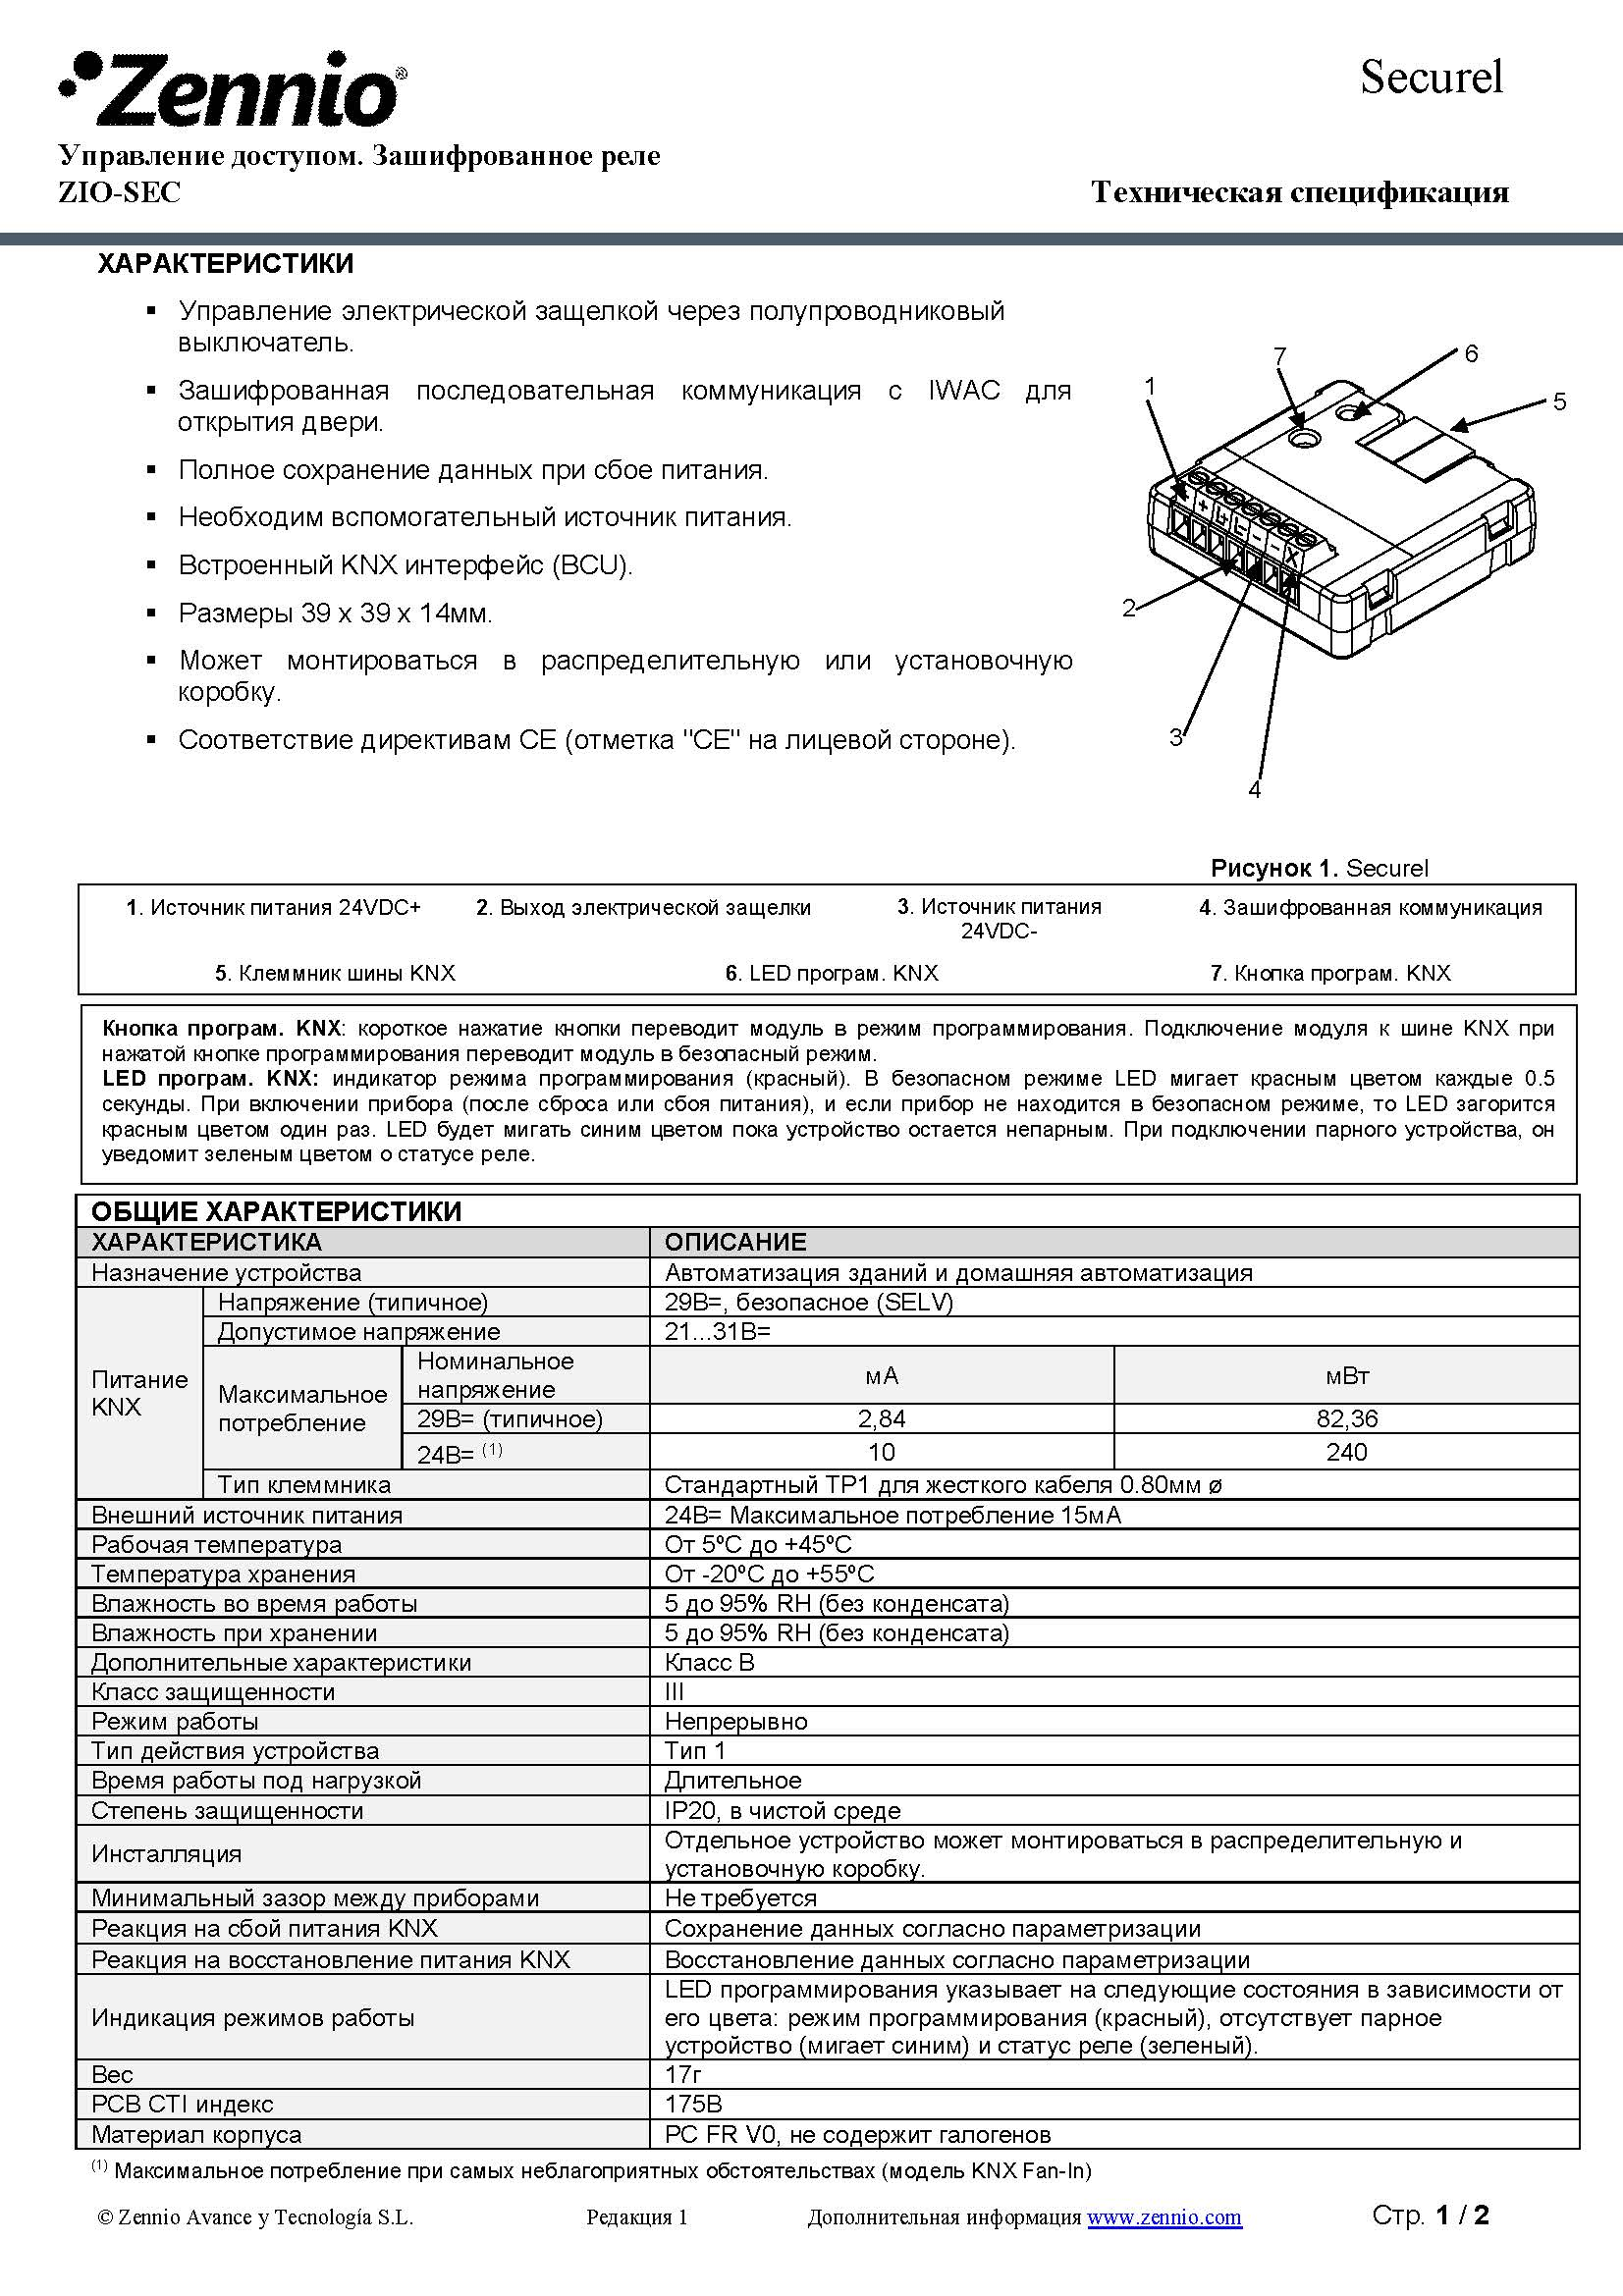 Datasheet Securel RU Ed1 Страница 1